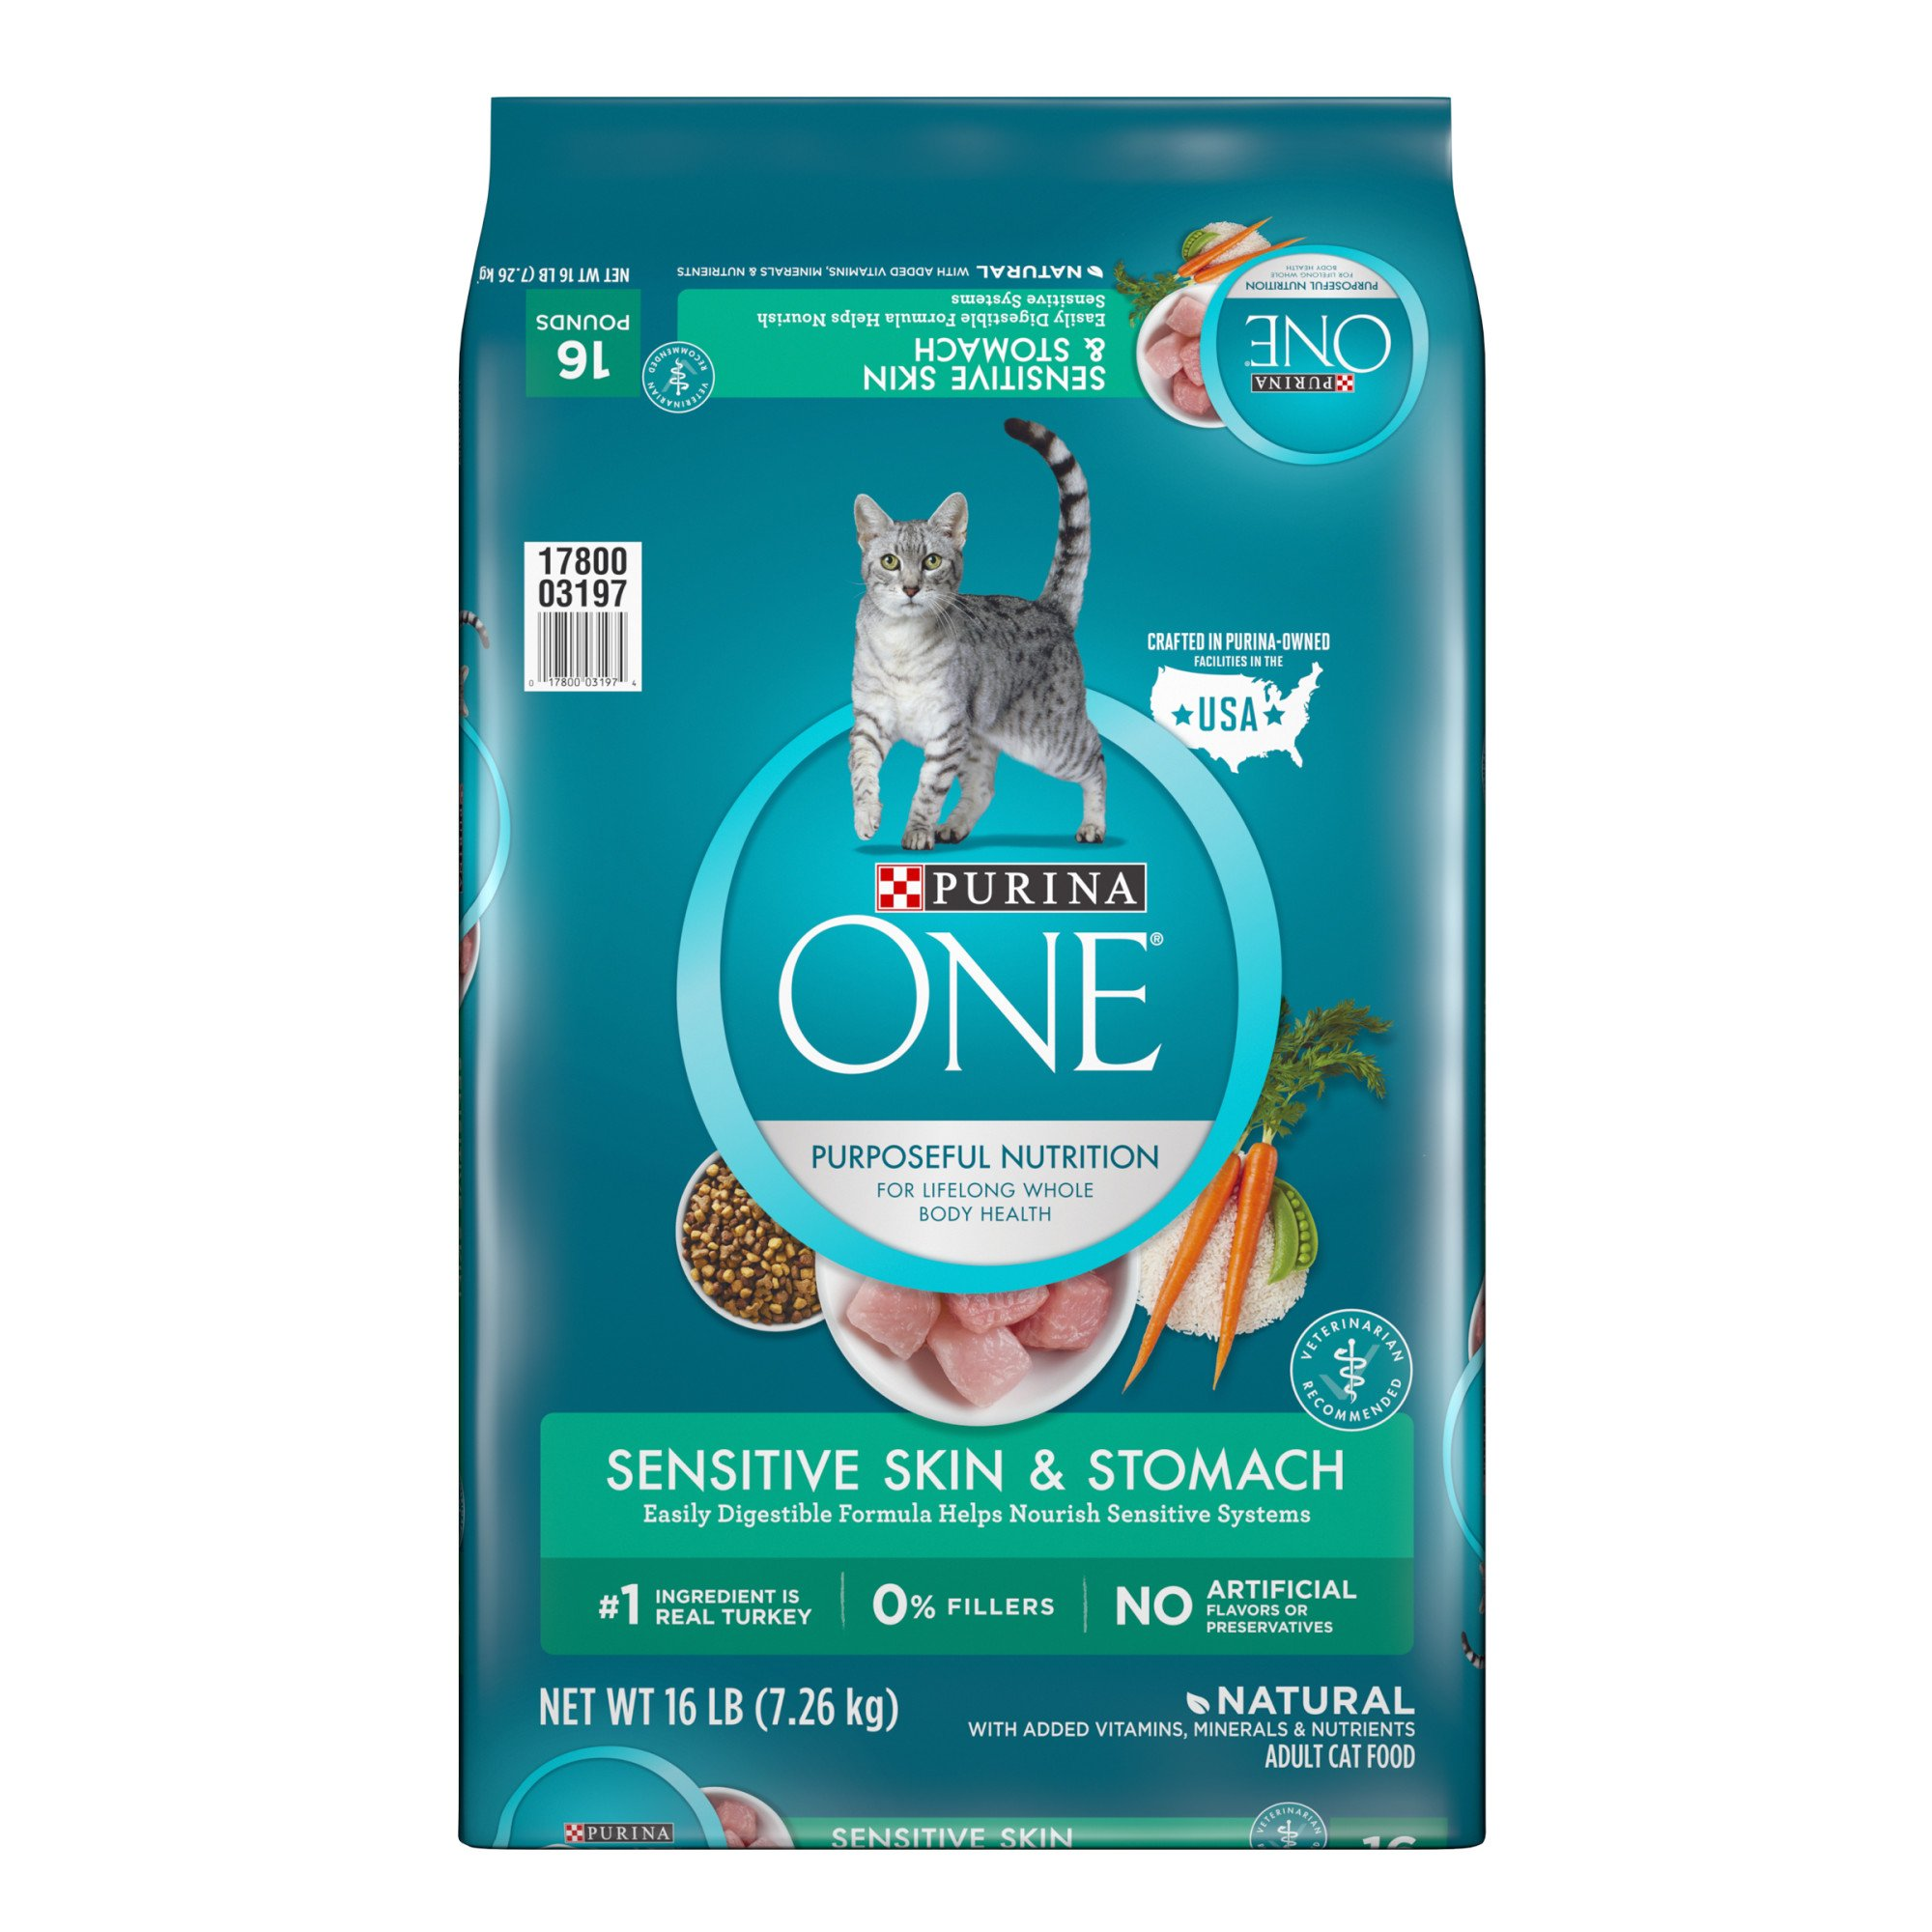 Purina Sensitive Systems Cat Food